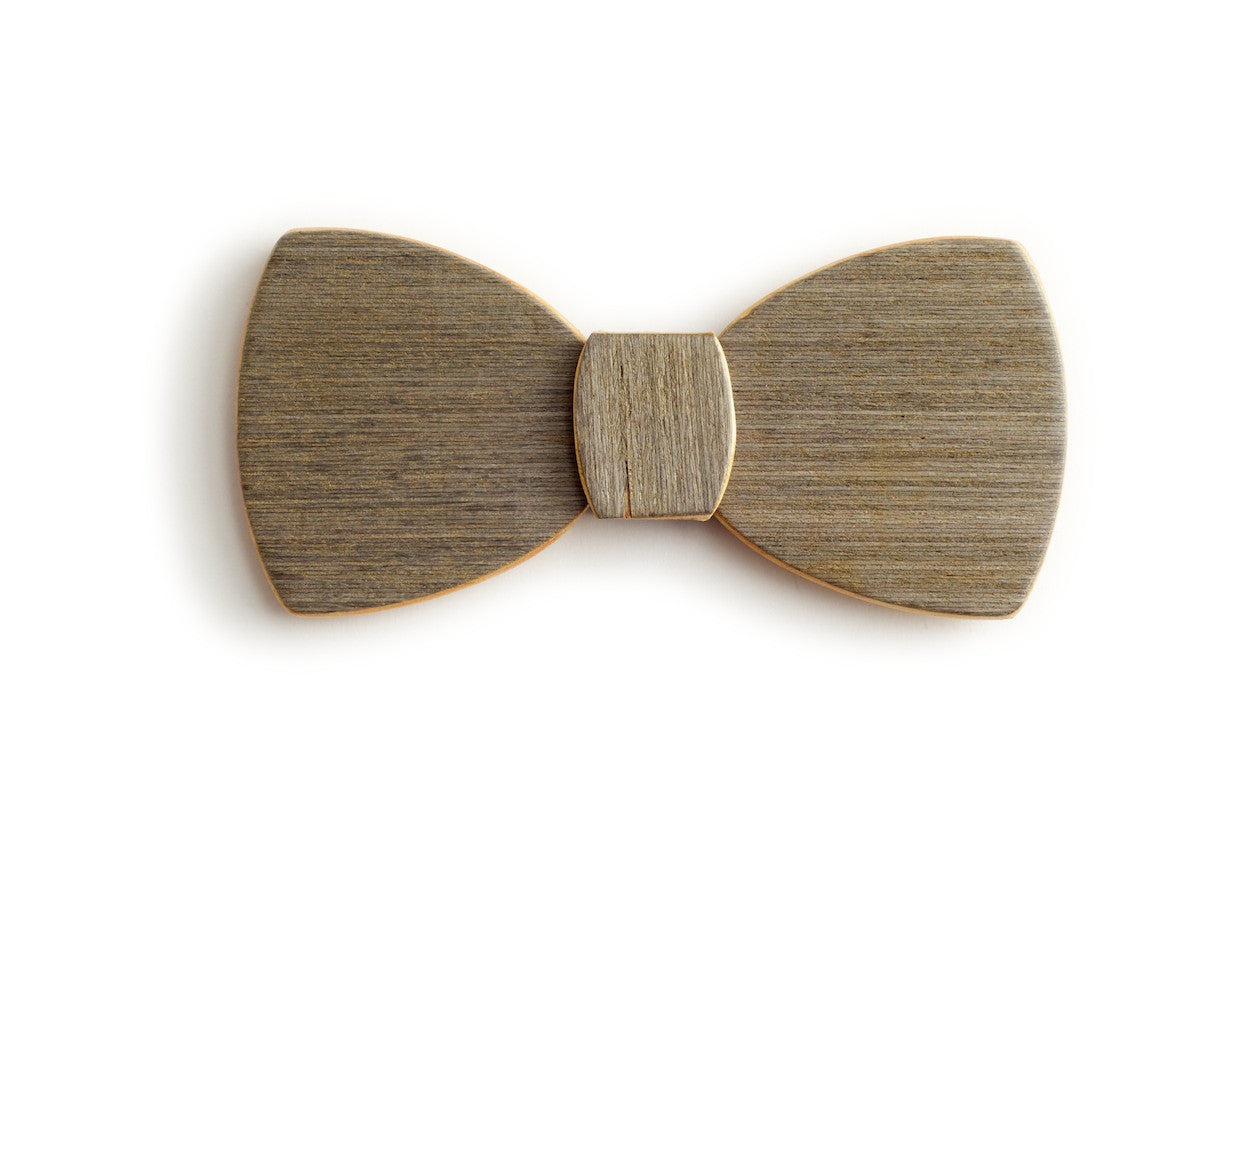 Butterfly Wood Bow Tie - White noise